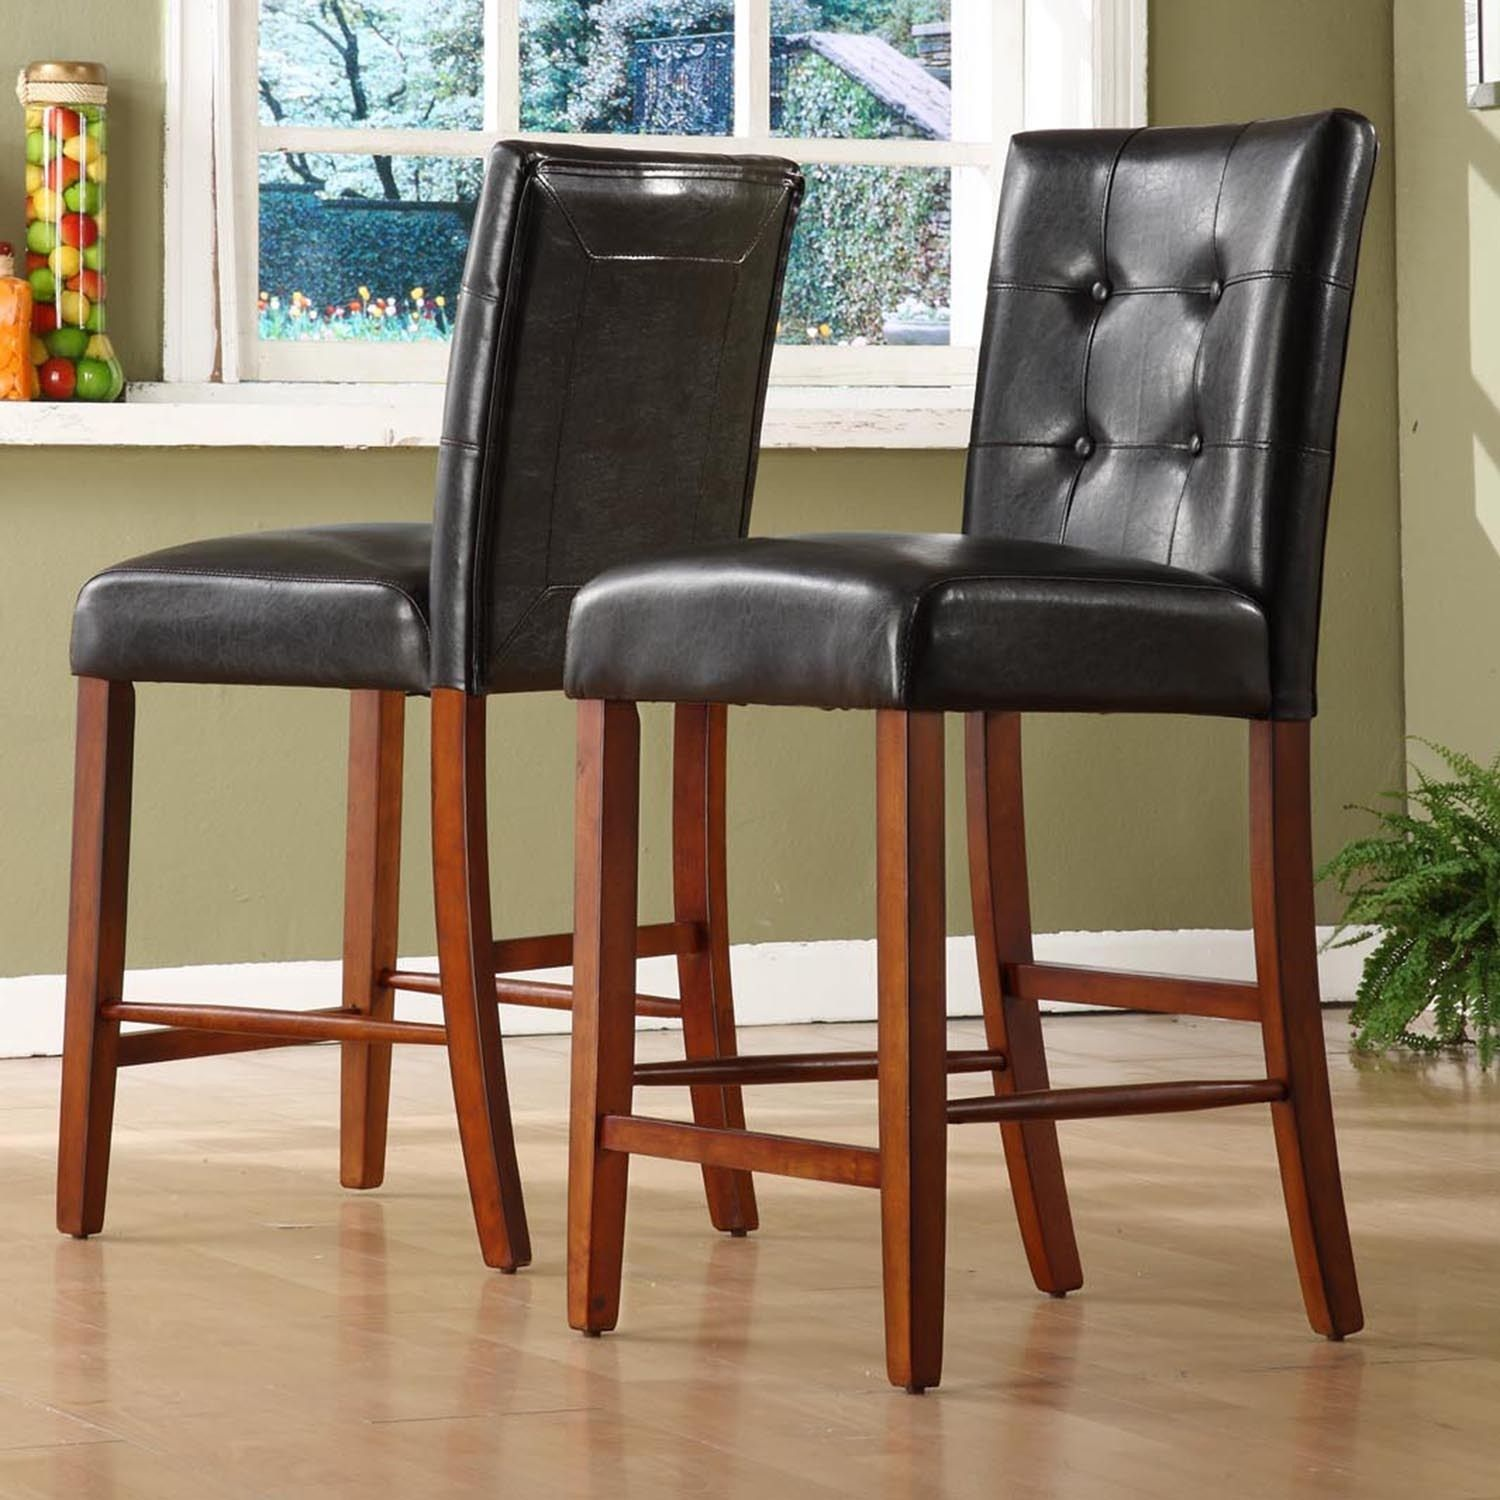 Tribecca home hutton faux leather counter height stools set of 2 brown cherry